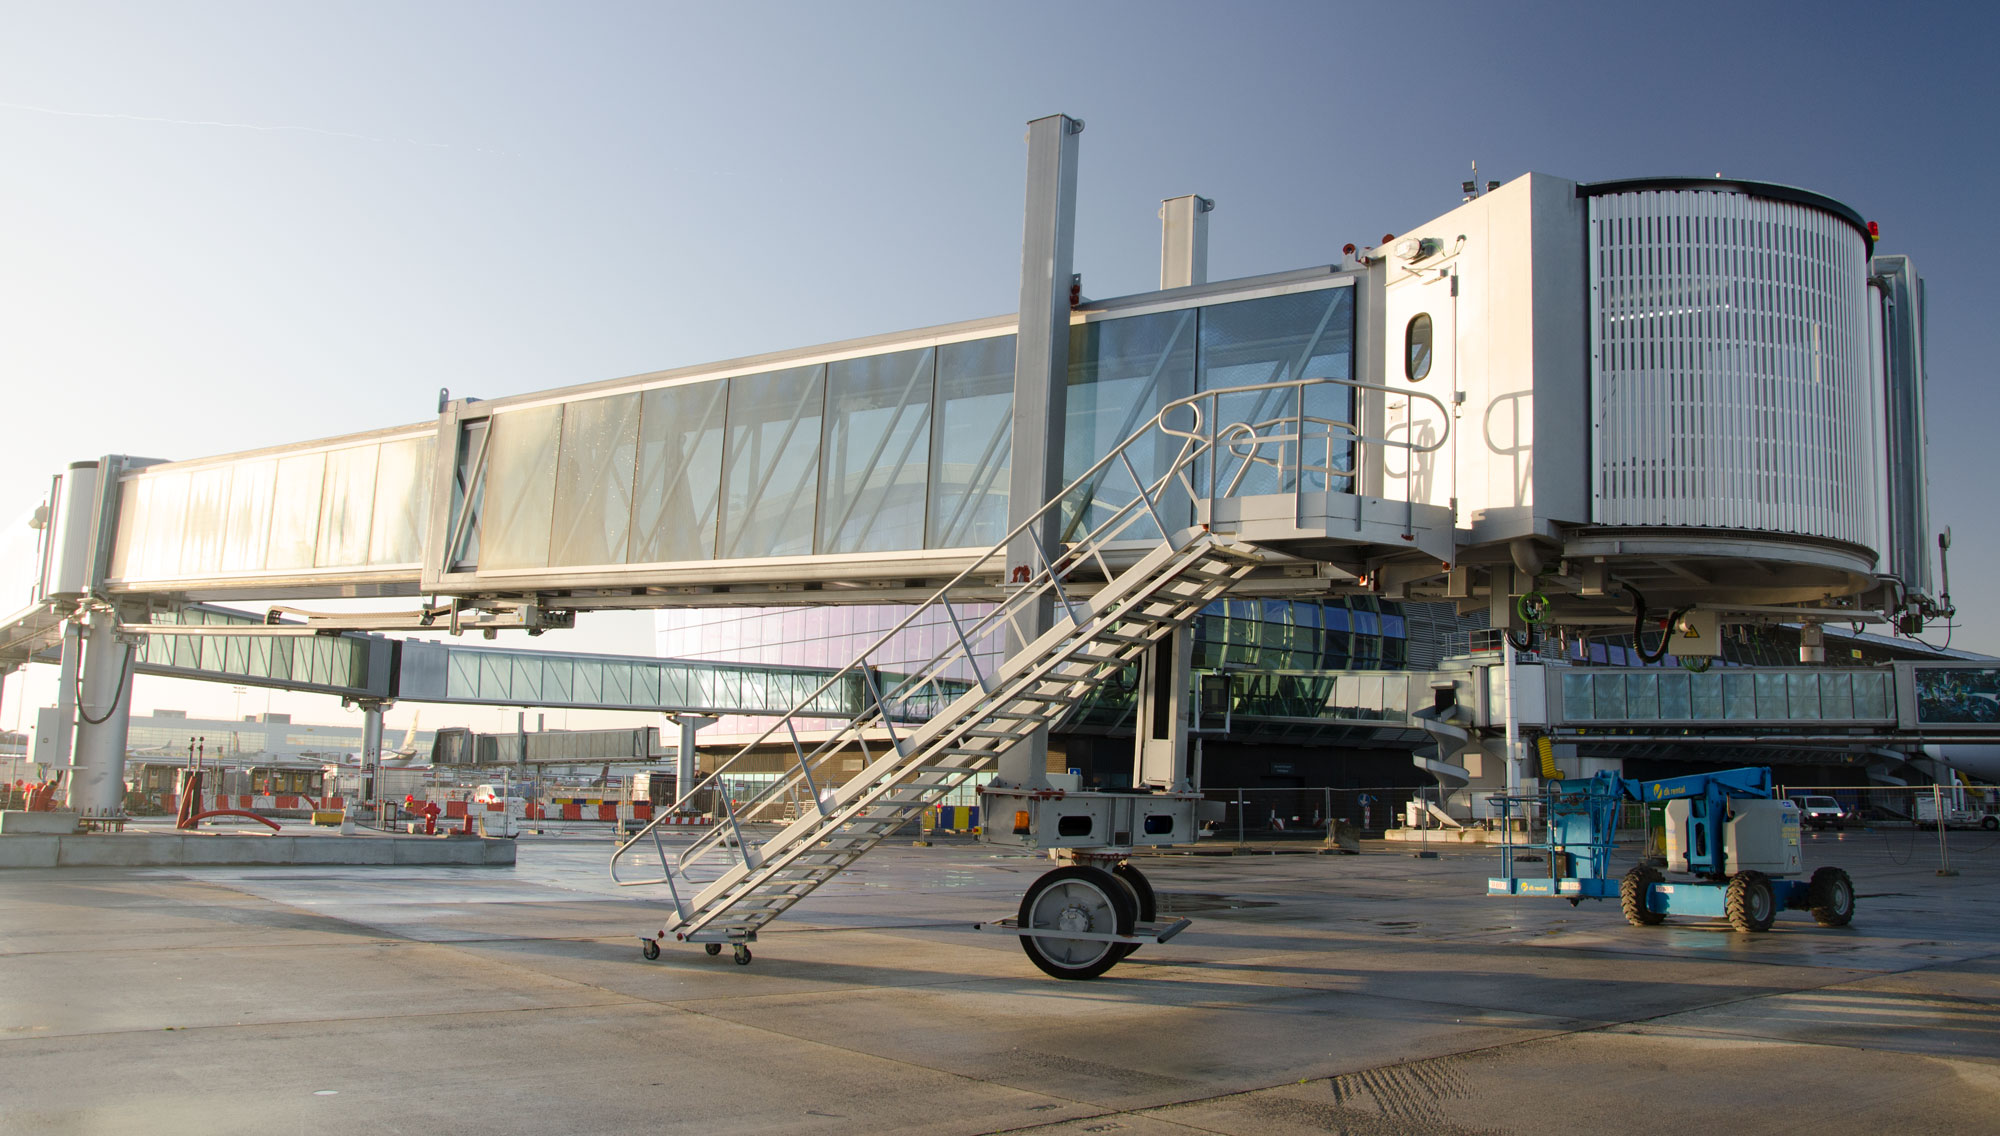 Brussels Airport Adelte